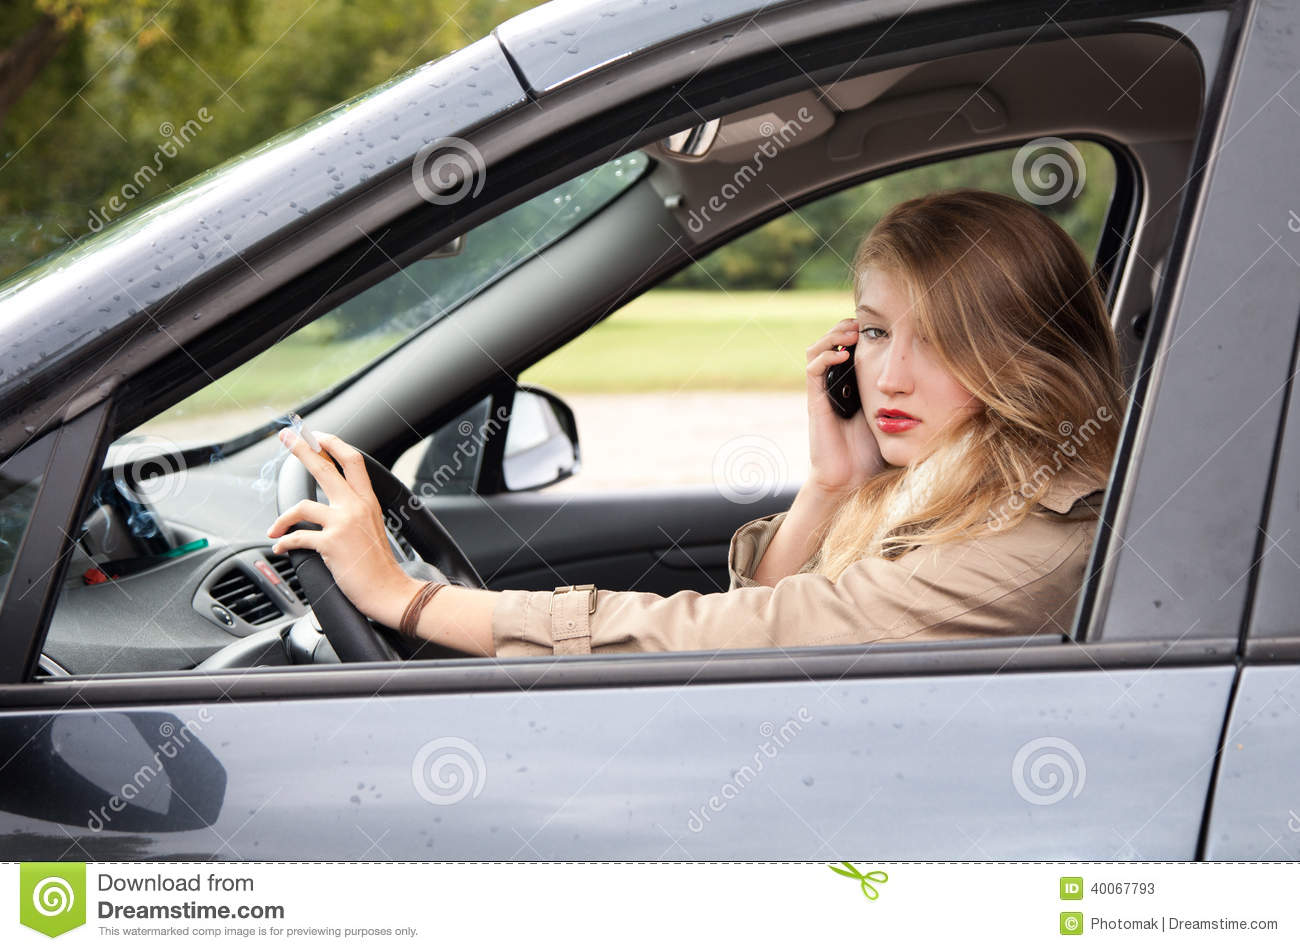 smoking woman driving a car and speaking on the phone stock photo   image 40067793